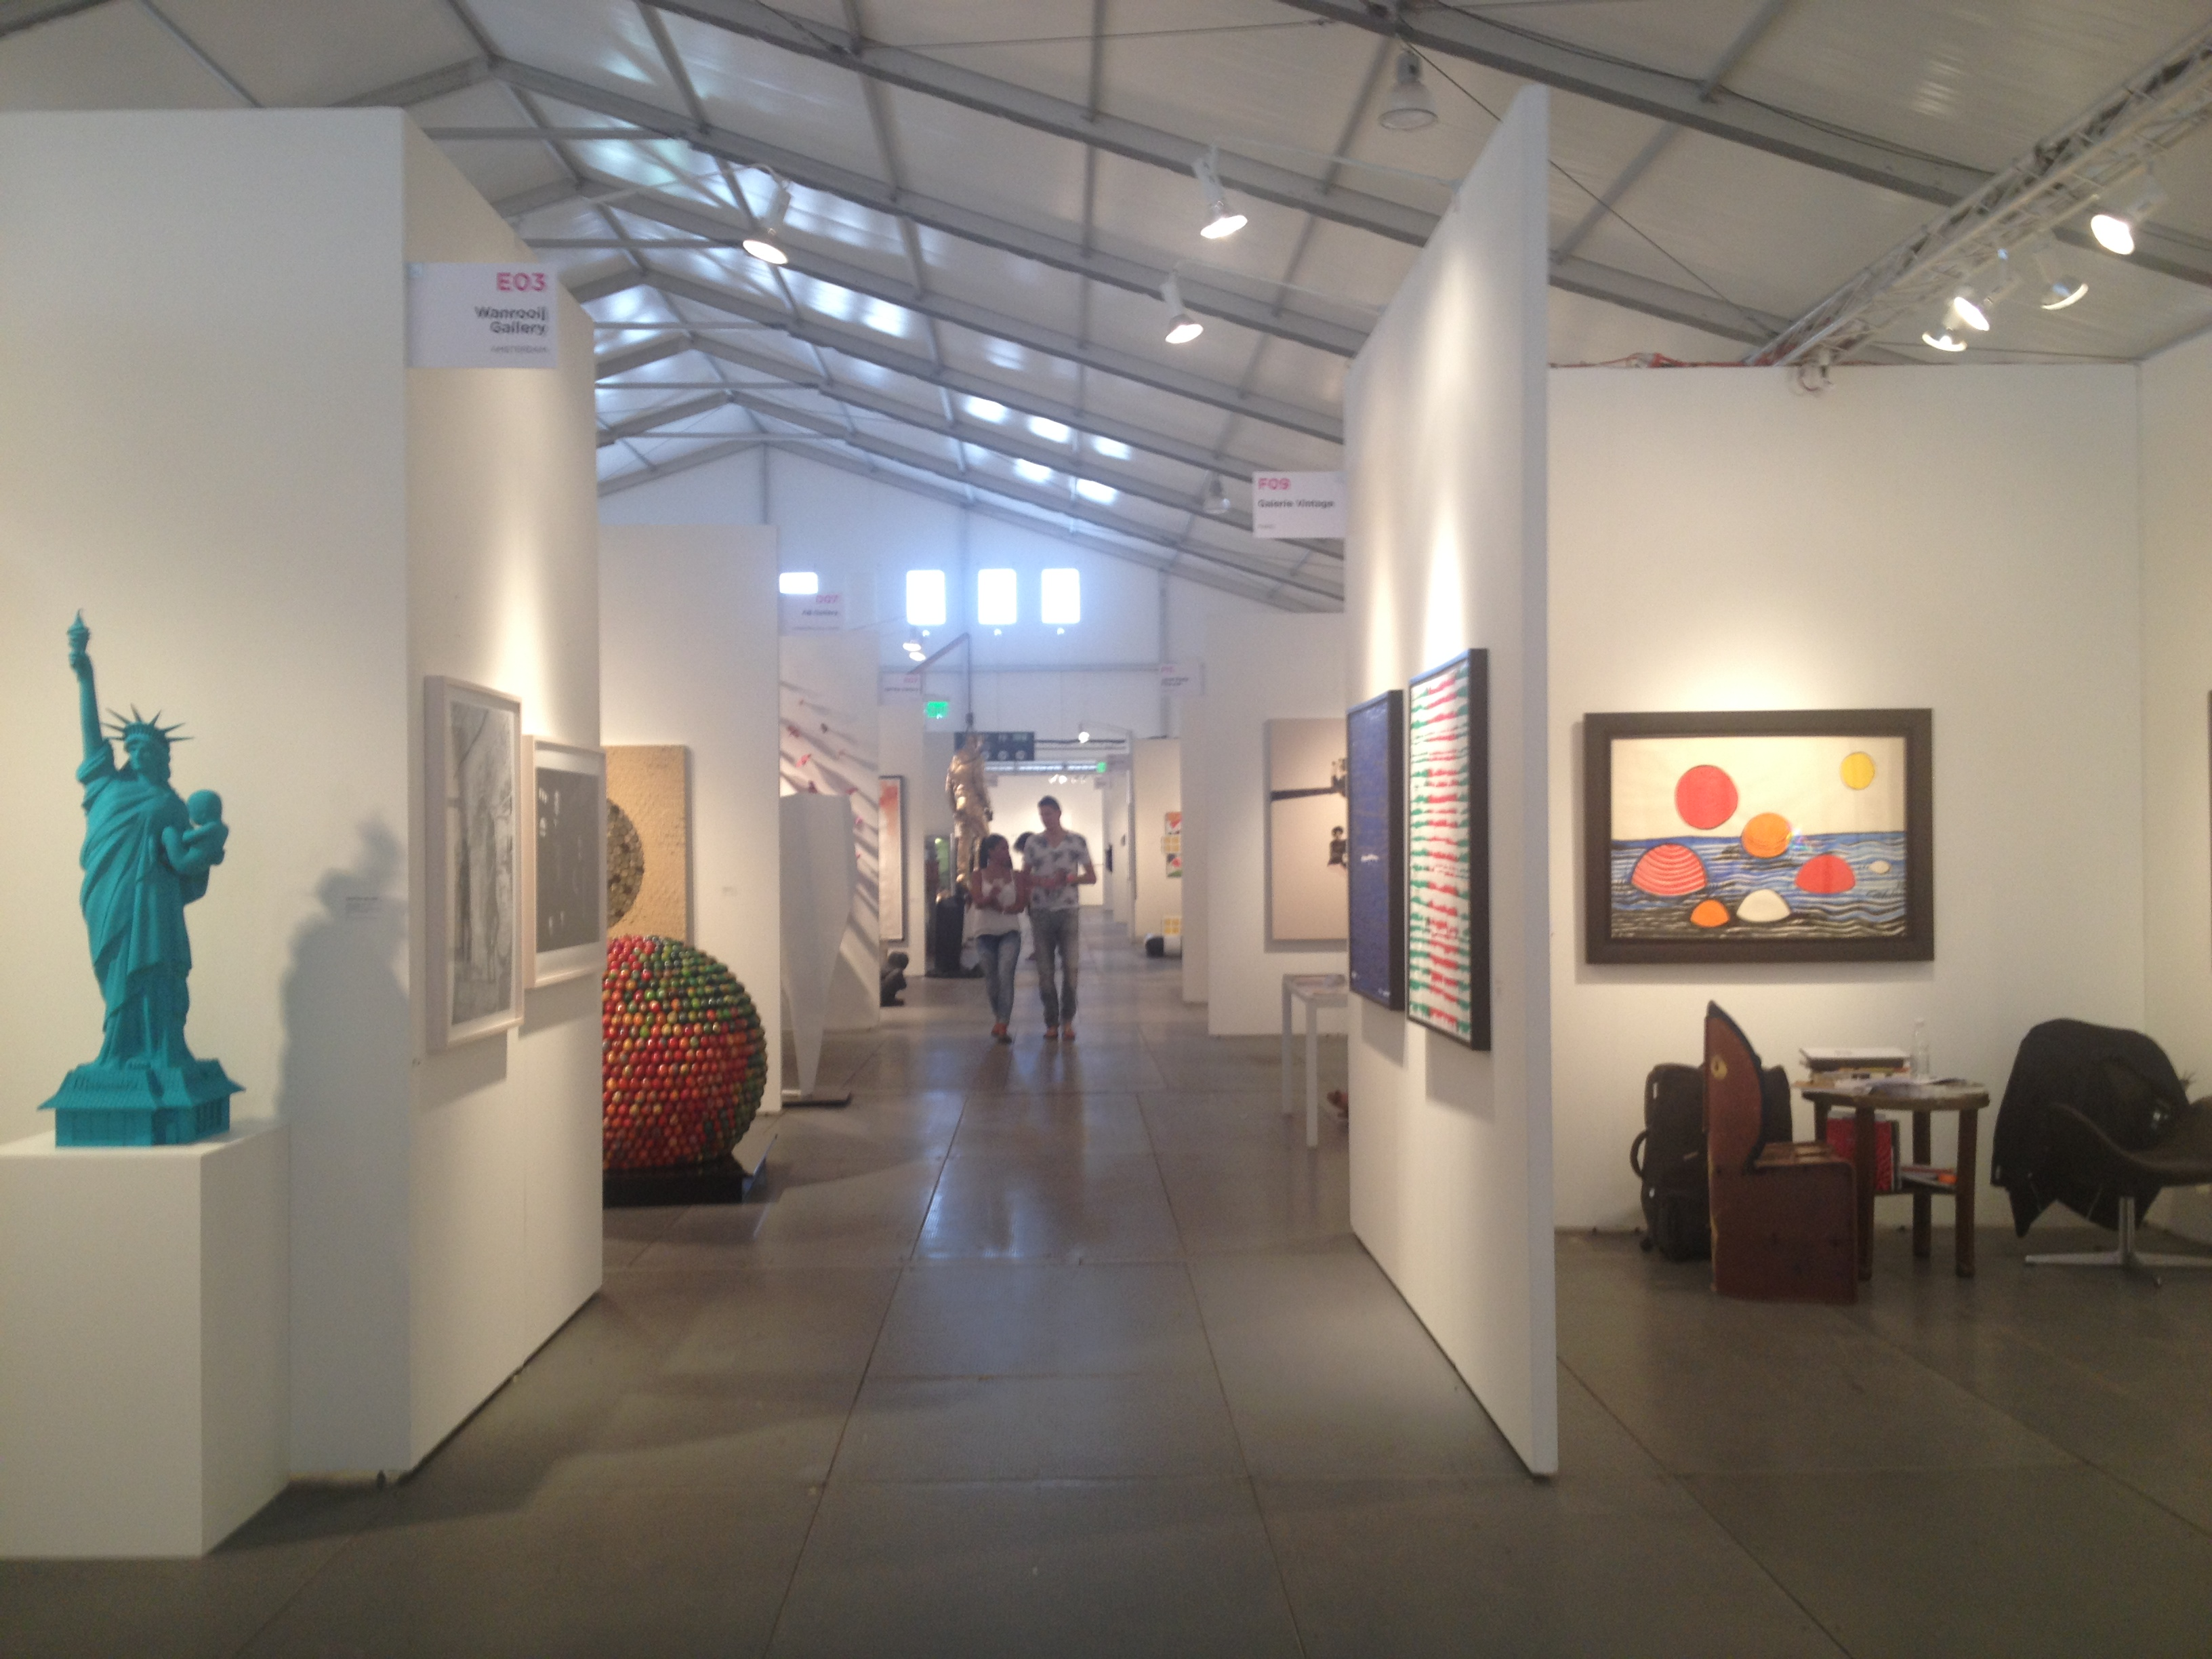 impression of the exhibition